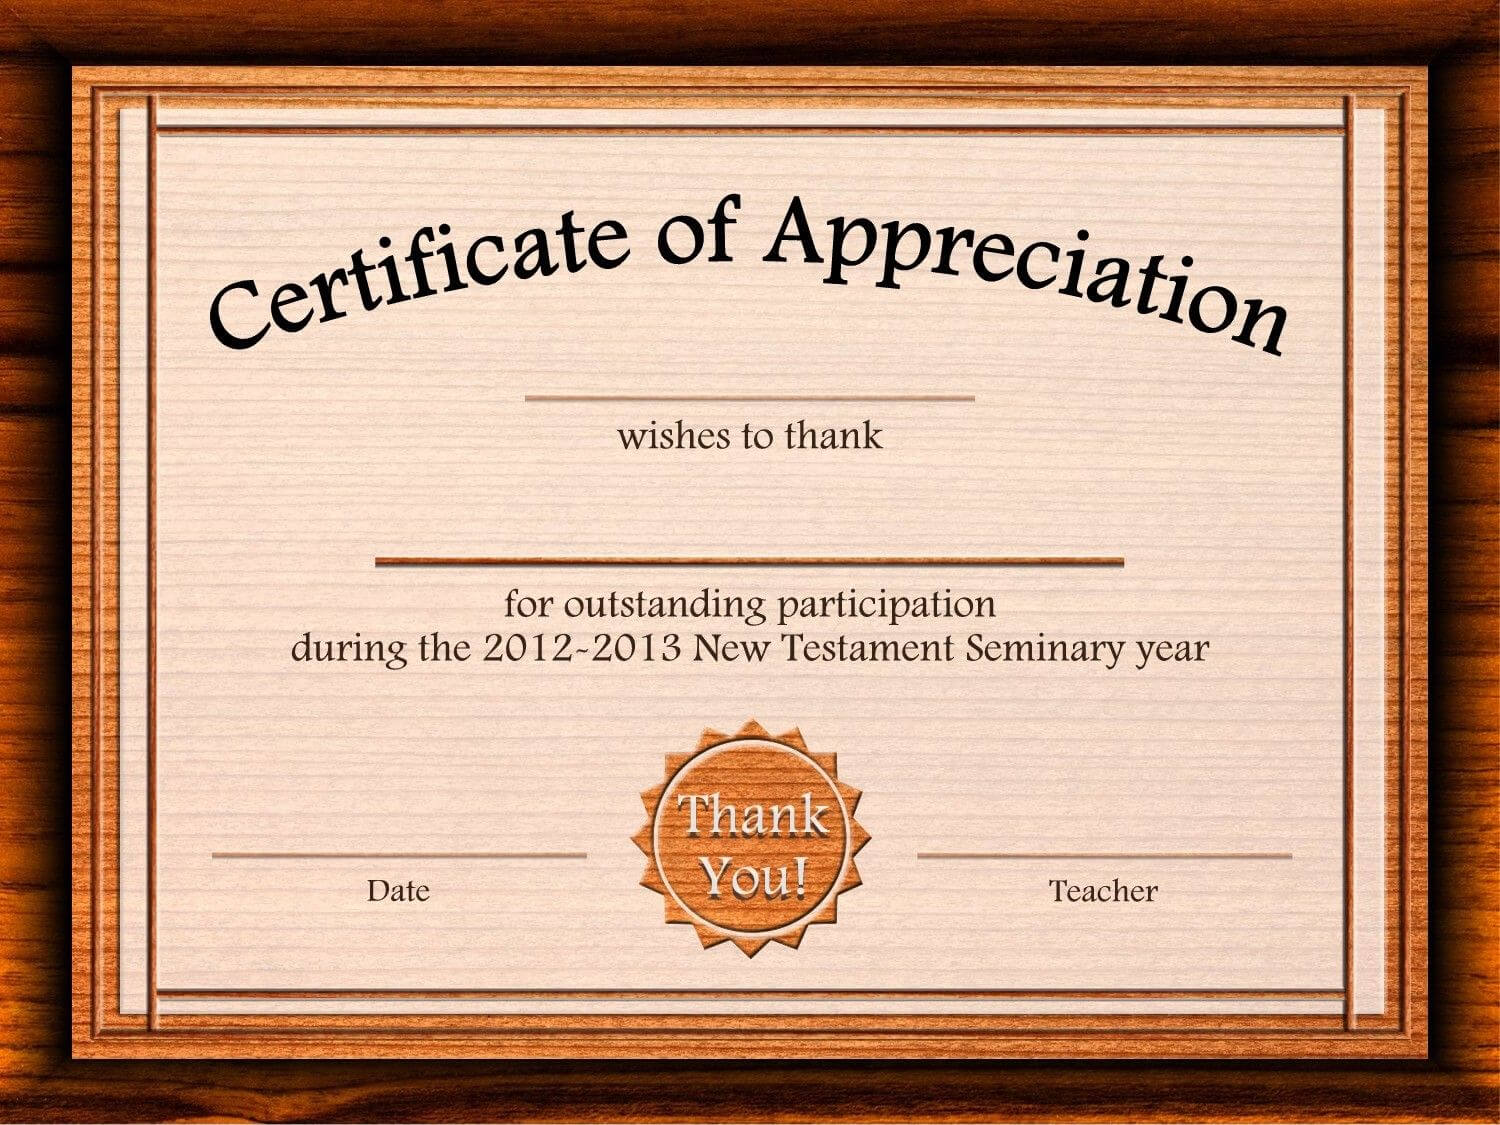 Free Certificate Of Appreciation Templates For Word Intended For Template For Certificate Of Appreciation In Microsoft Word